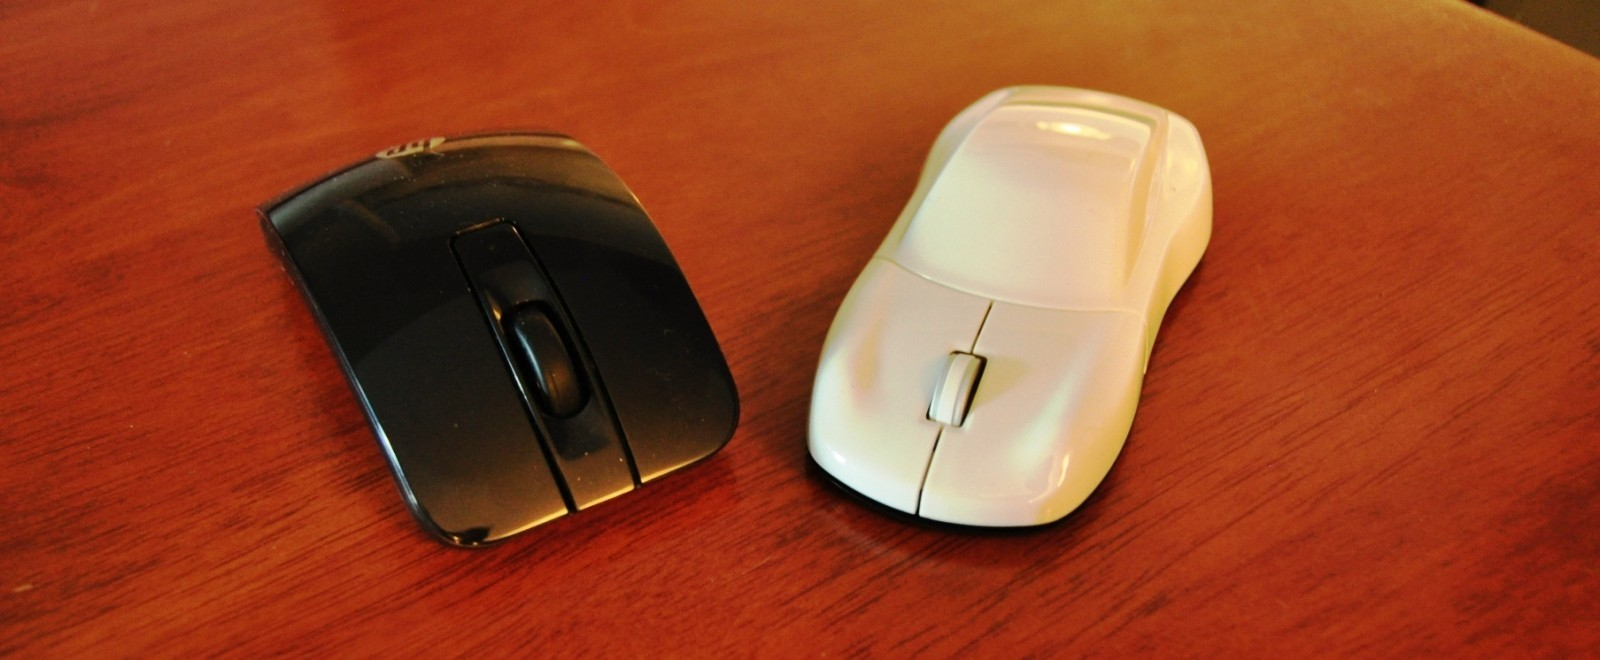 CarRevsDaily - Porsche Design Computer Mouse - Gadget Review 32